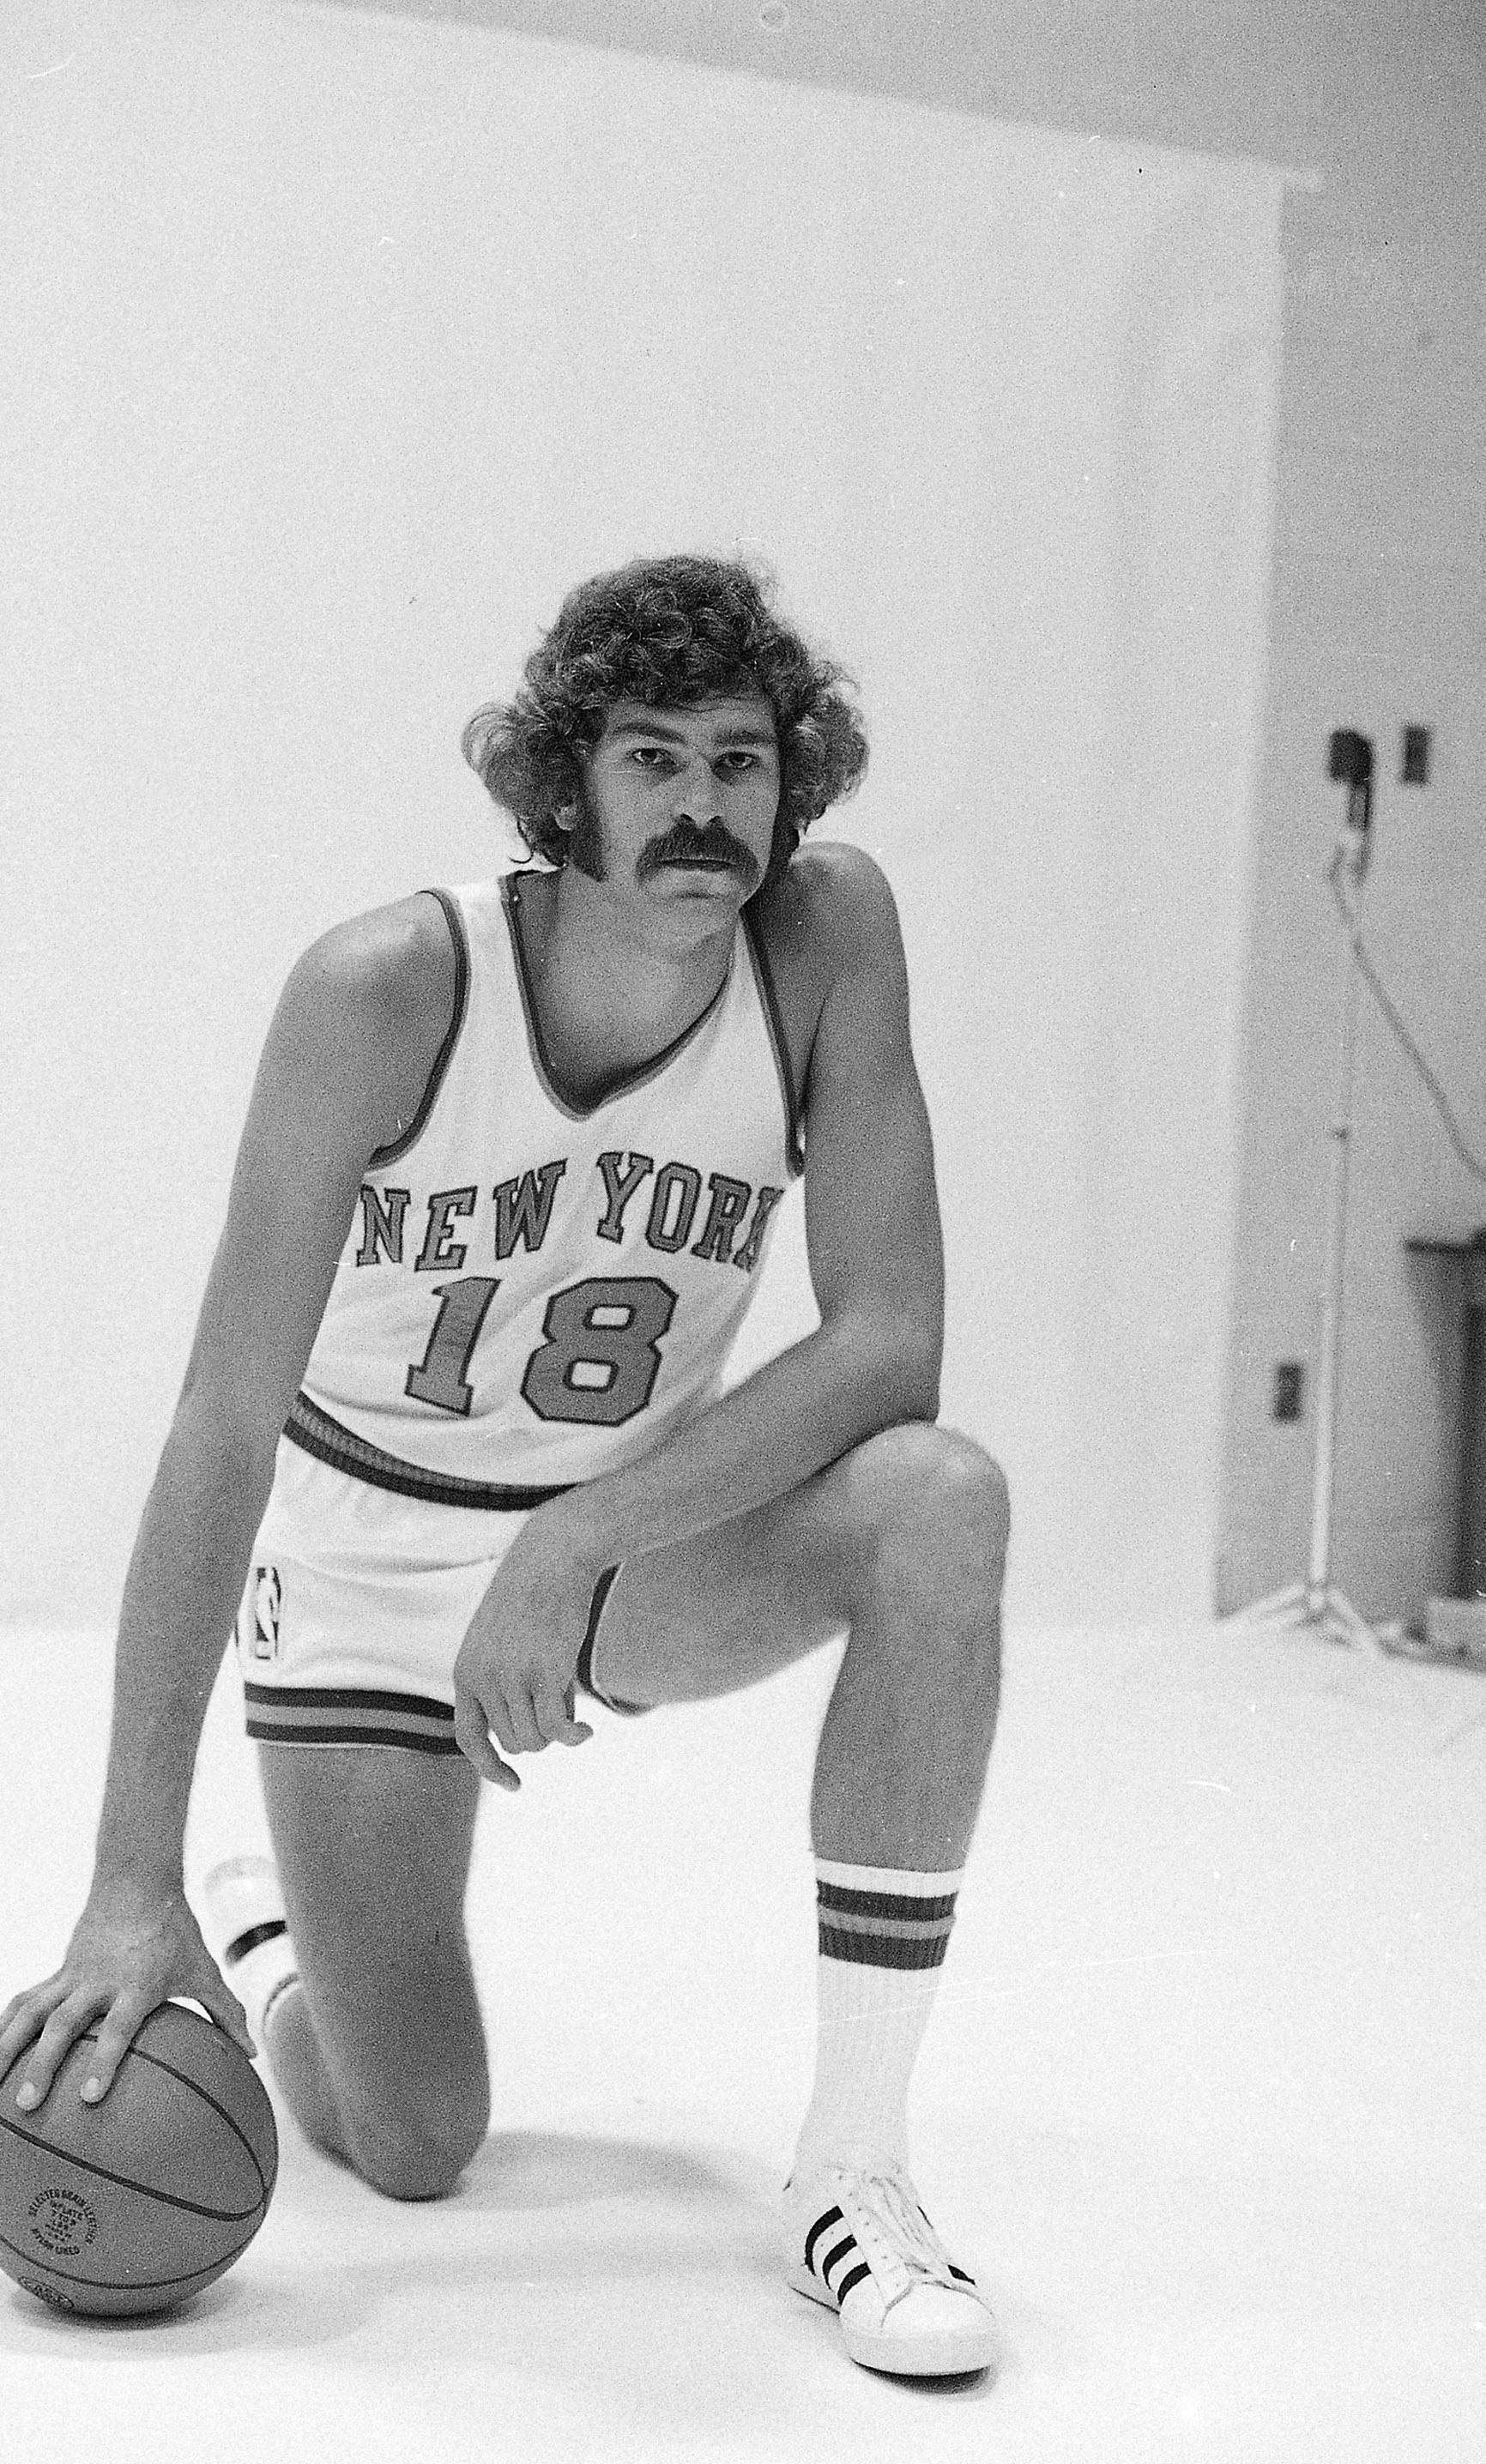 "FILE - In this 1971, file photo, New York Knicks' Phil Jackson poses for a photo. Jackson will be introduced as the newest member of the New York Knicks' front office Tuesday morning, according to a person familiar with the negotiations between the 11-time champion coach and the team. The person spoke on condition of anonymity on Friday, March 14, 2014, because the Knicks would only confirm that a ""major announcement"" involving team executives was scheduled. (AP Photo/File)"